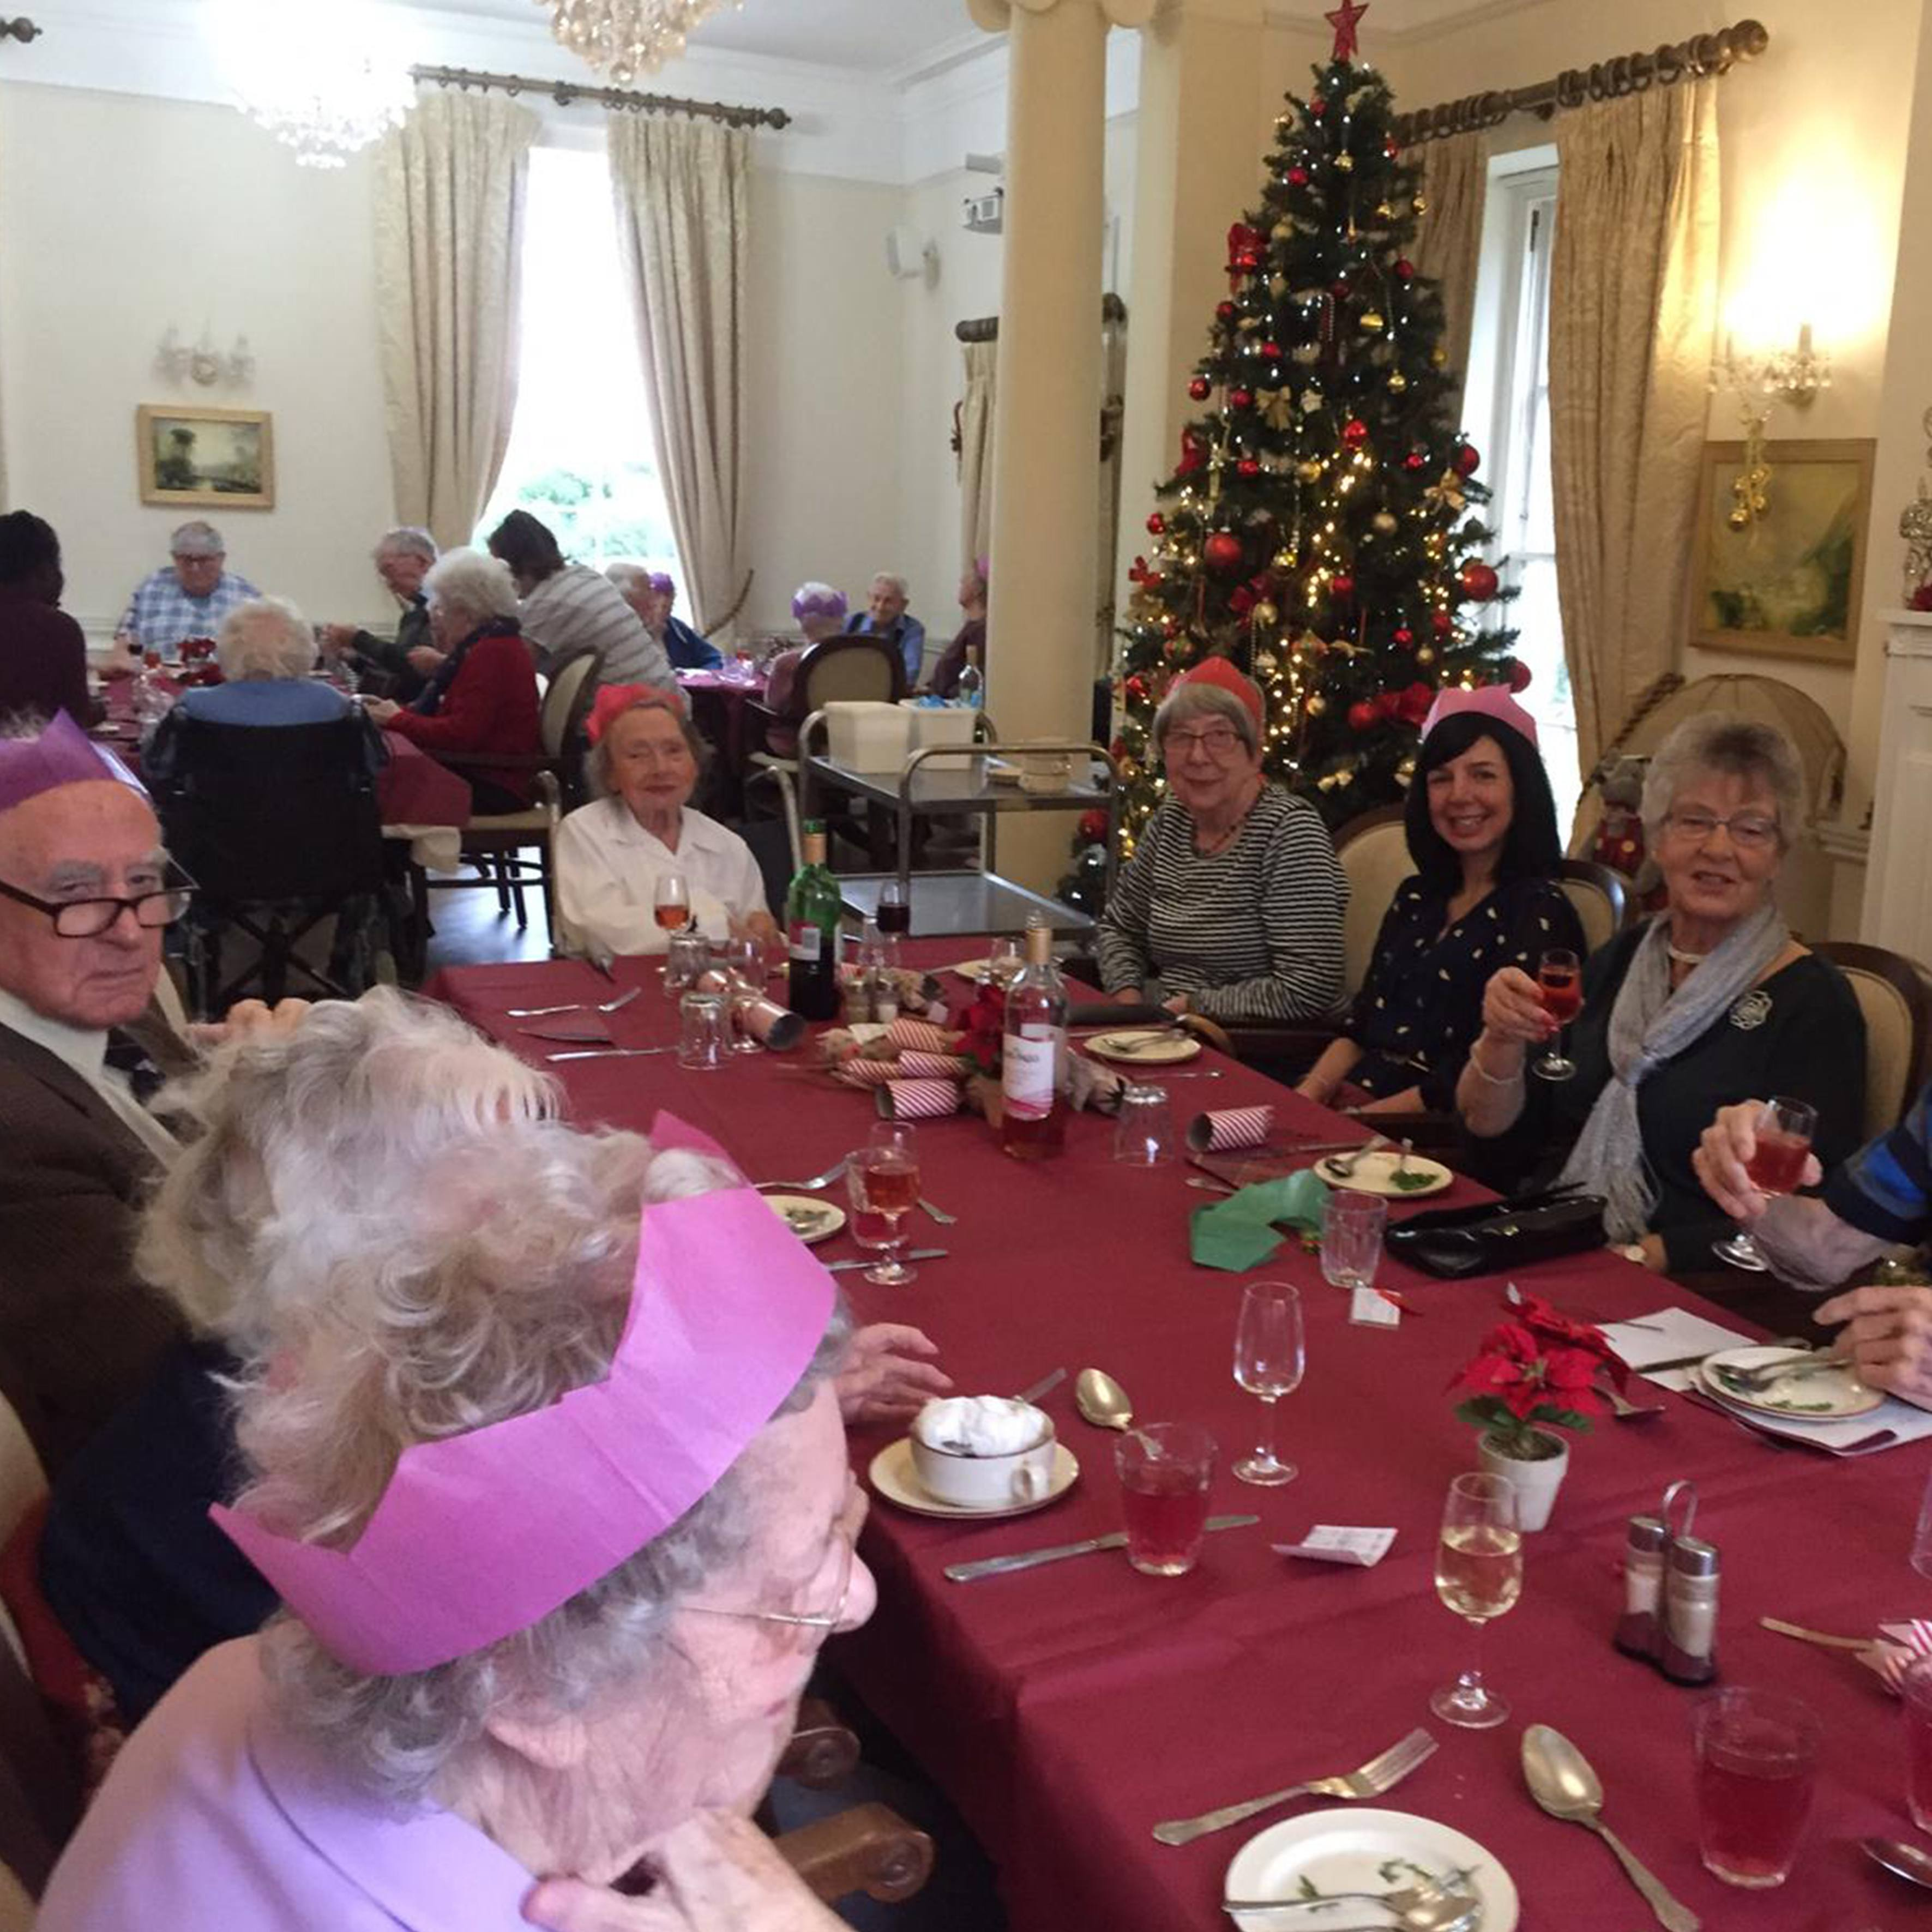 Christmas Day in the living room at Blackbrook House